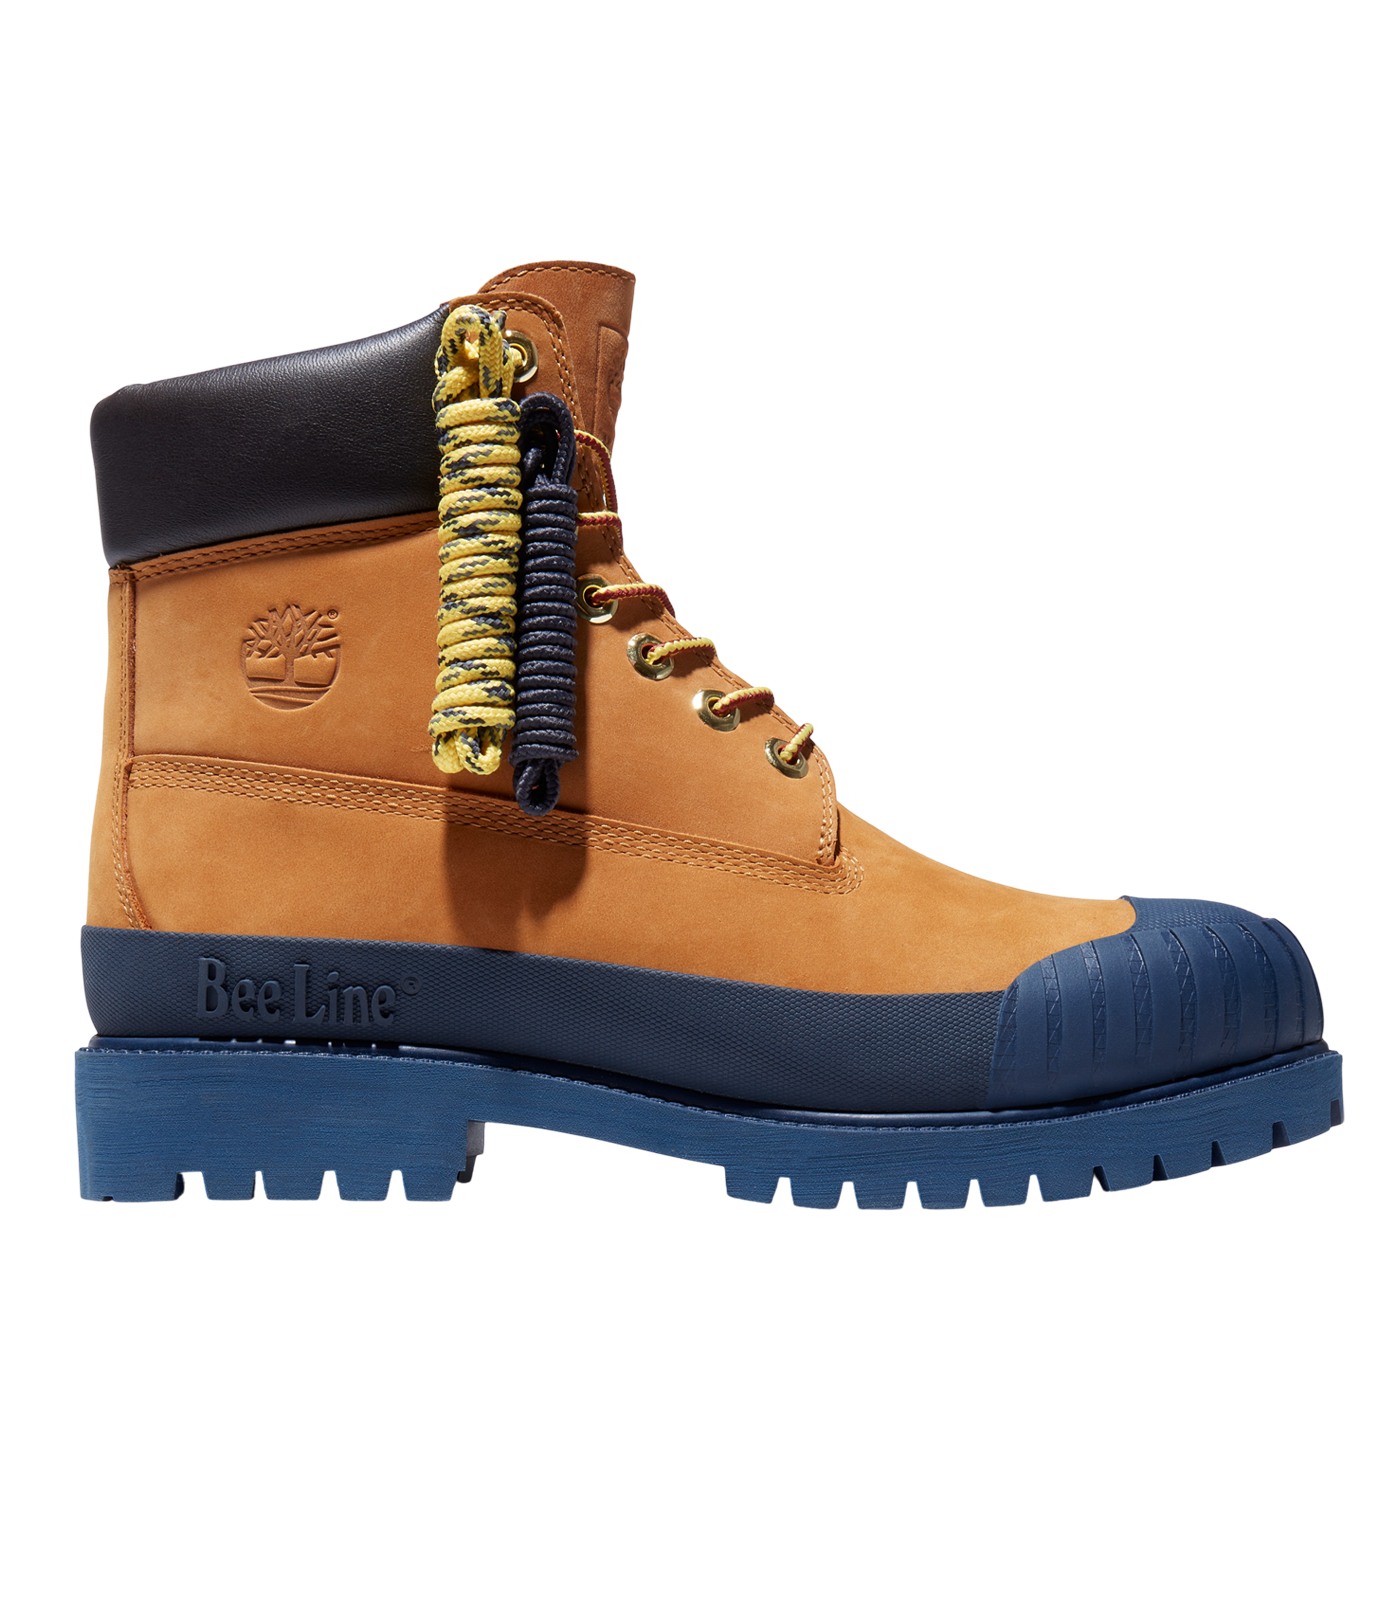 BEE LINE & TIMBERLAND 6-INCH RUBBER TOE BOOT - NAVY